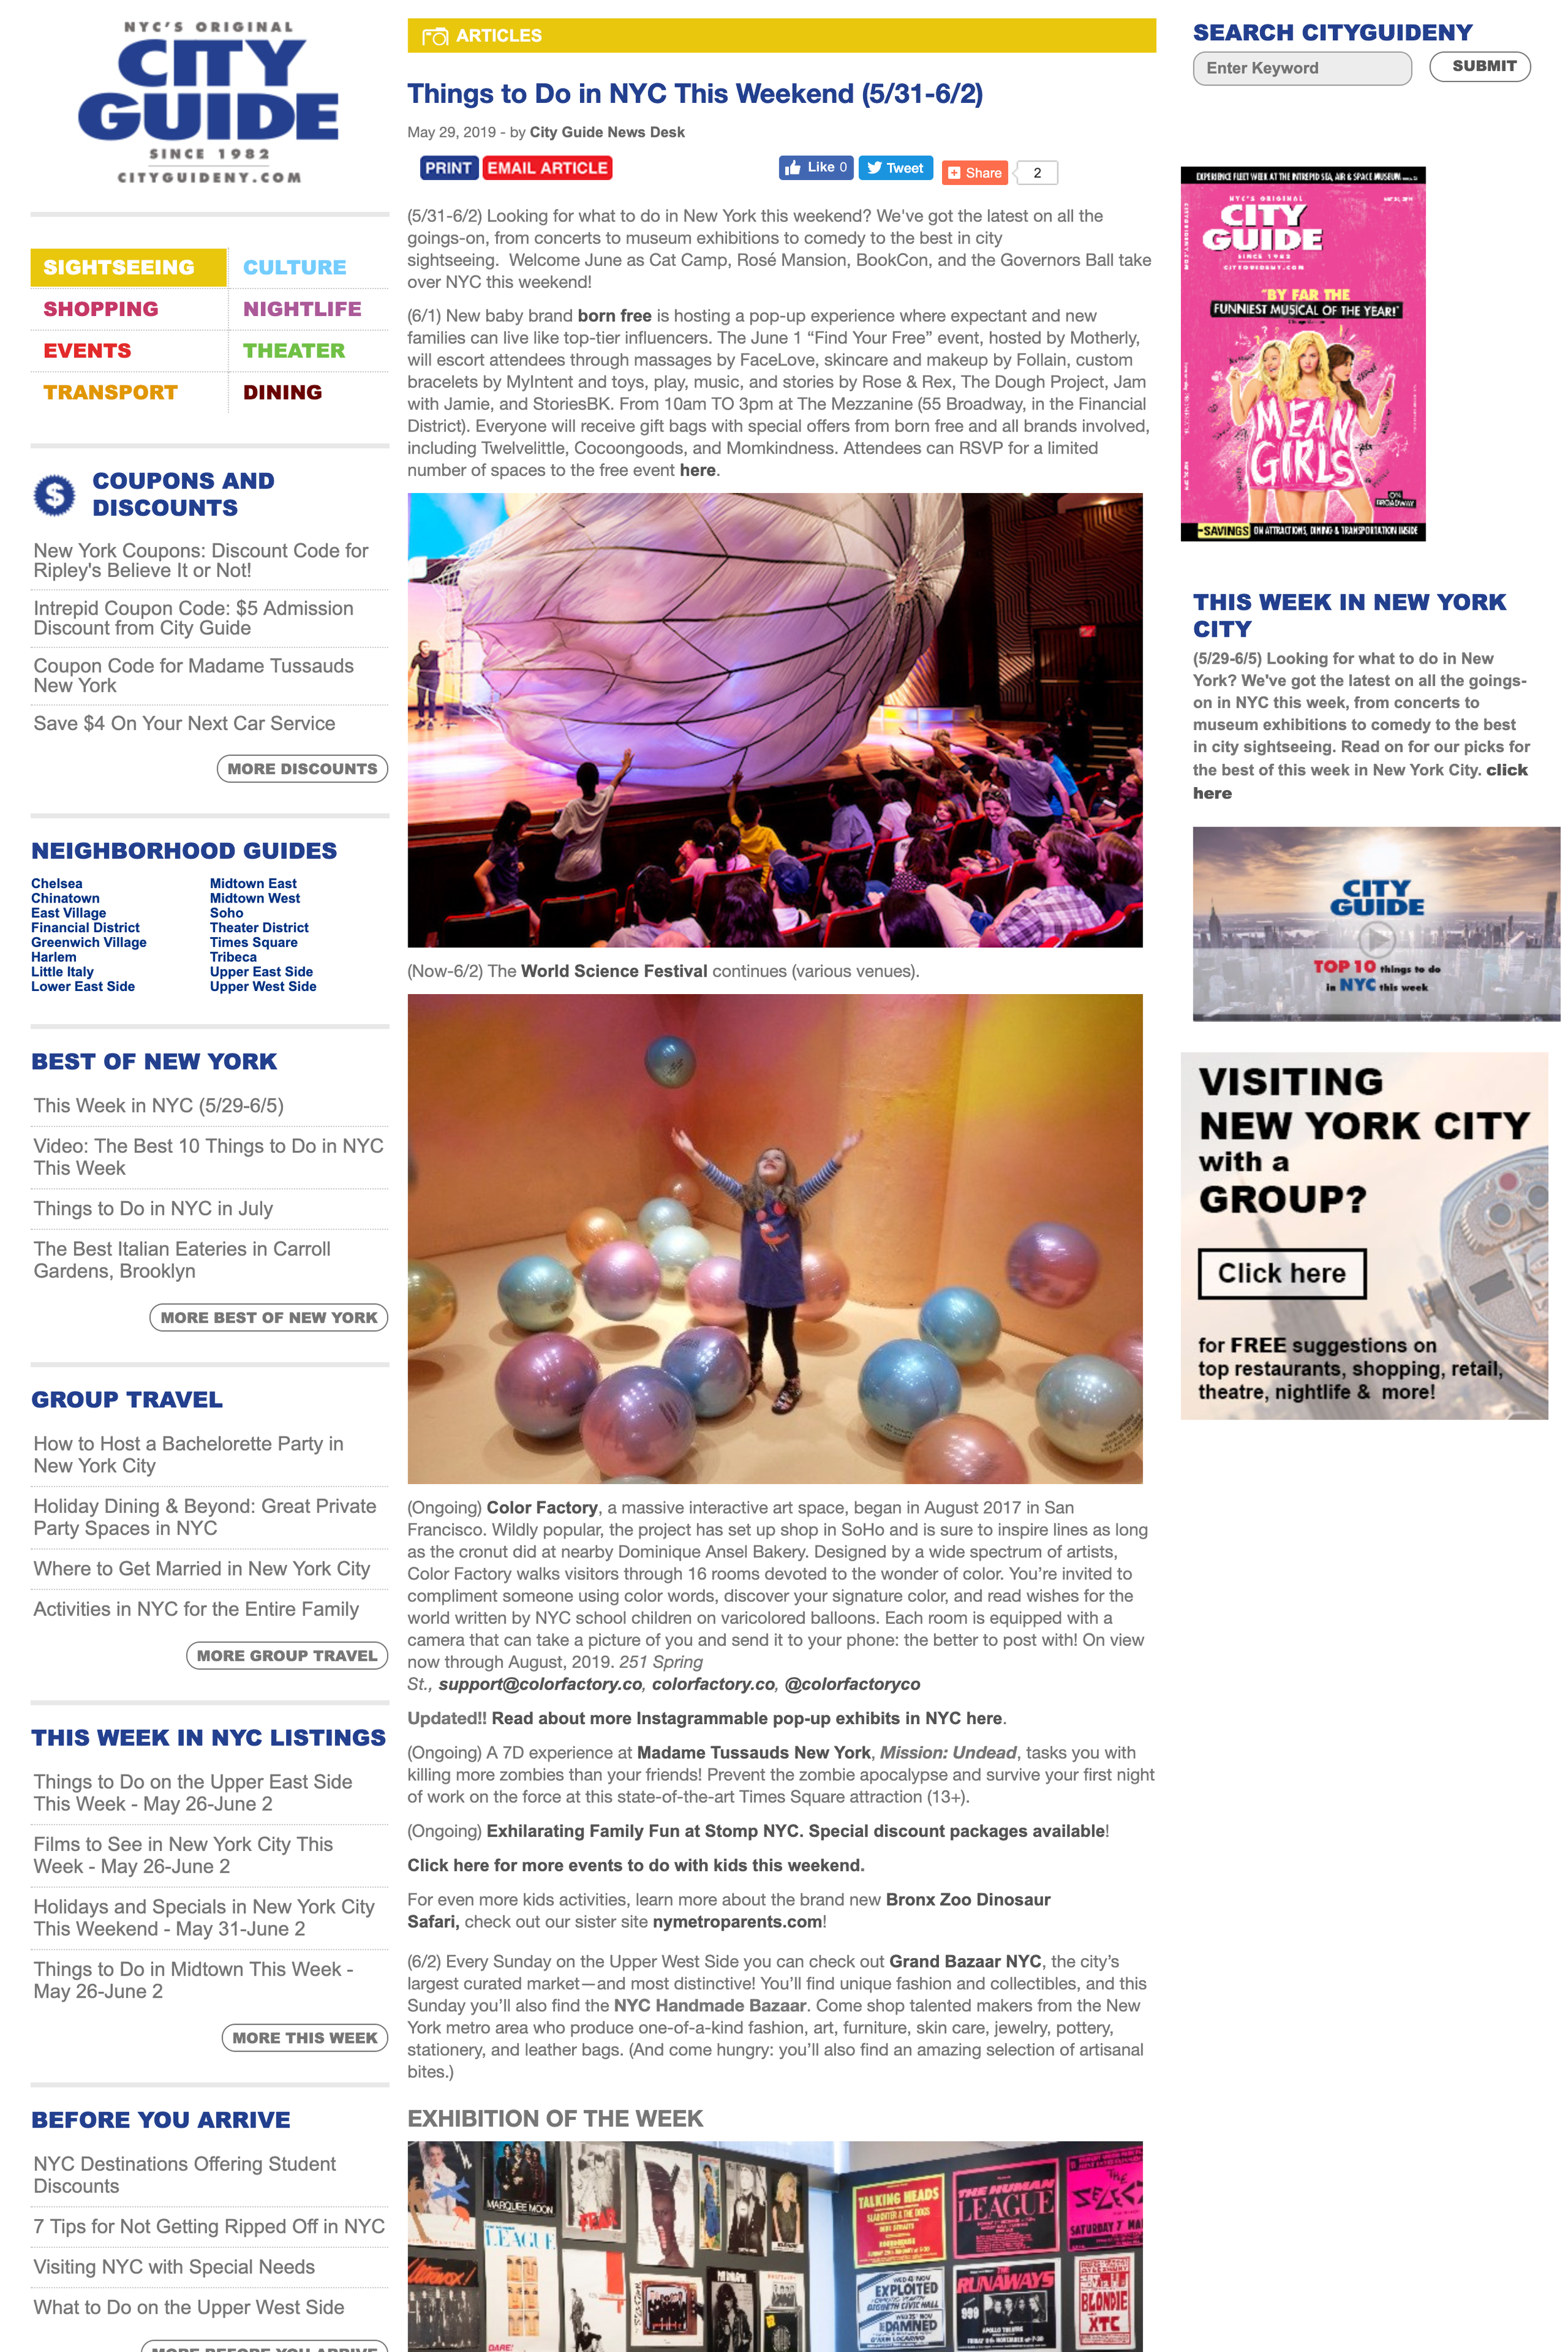 2019.05.29_City Guide NY Online_born free Find Your Free event_cropped 2x3.png